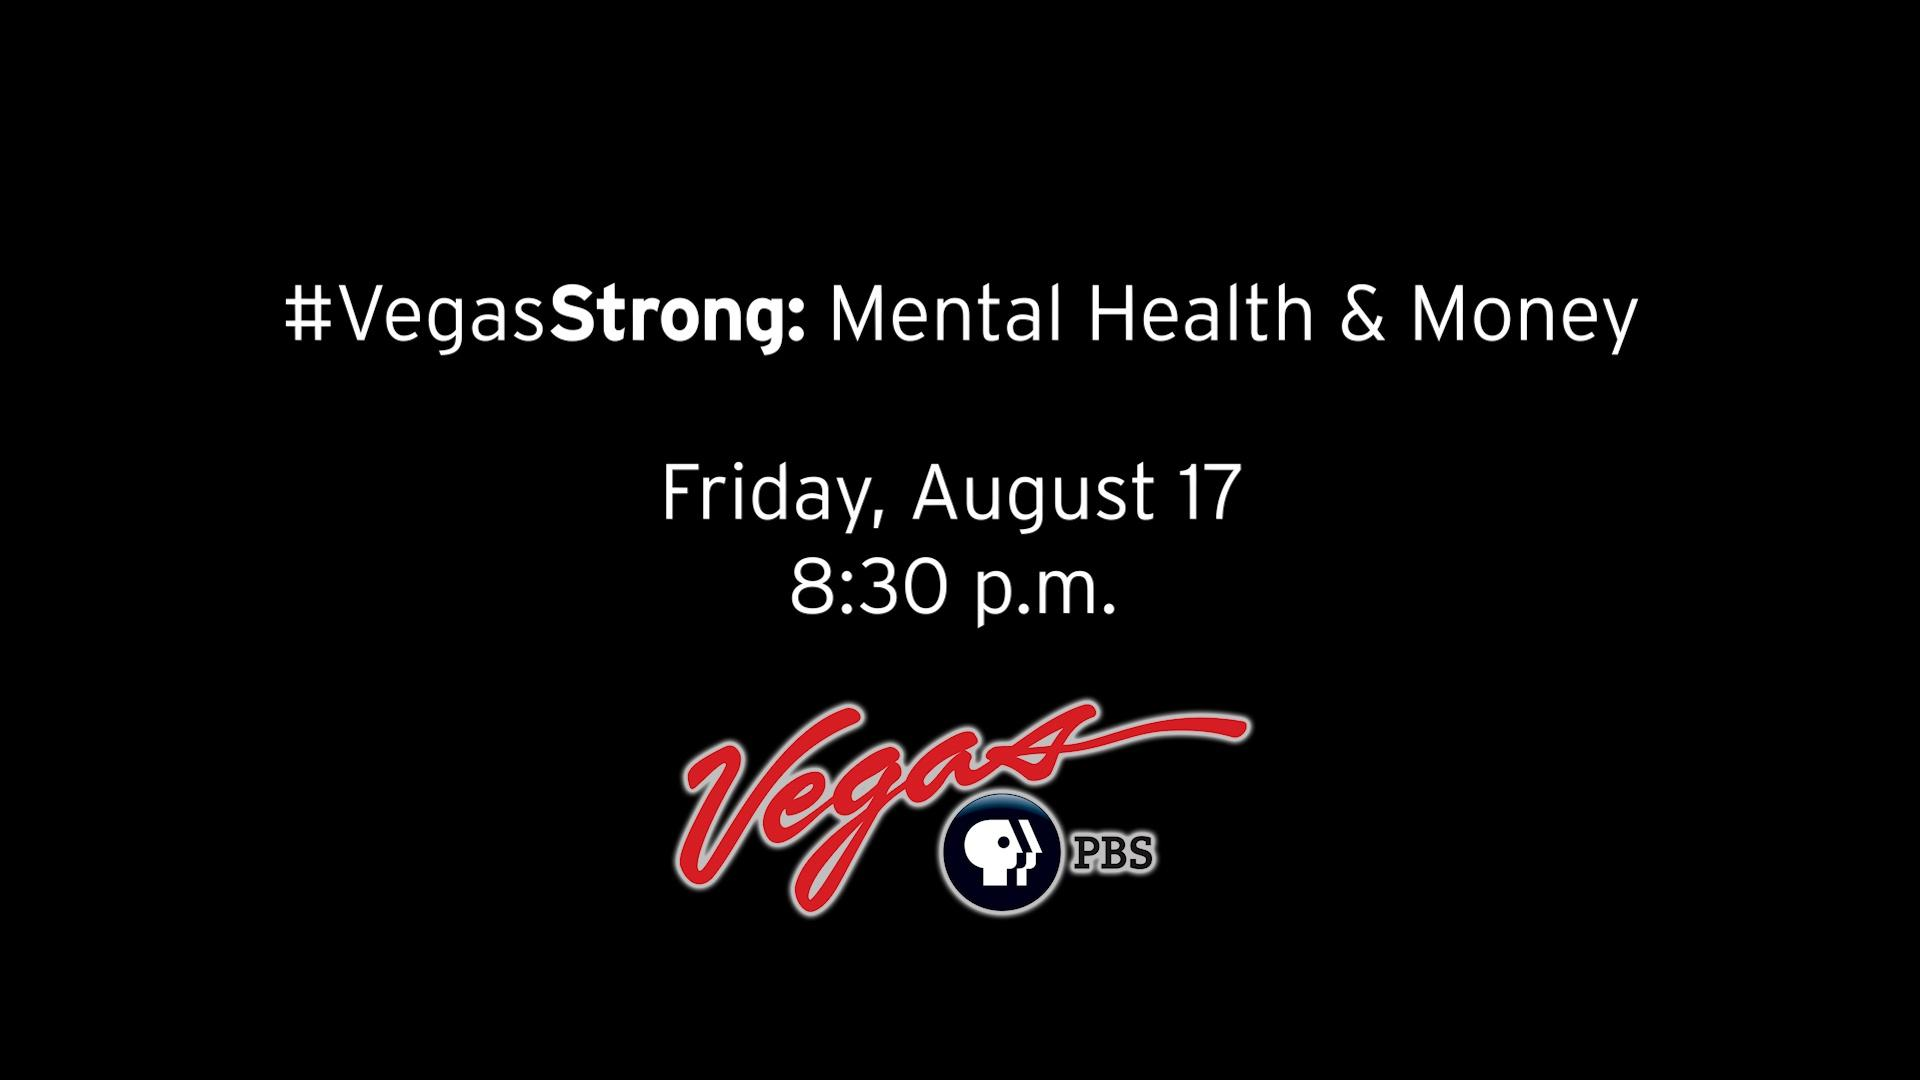 #VegasStrong: Mental Health and Money Preview 2